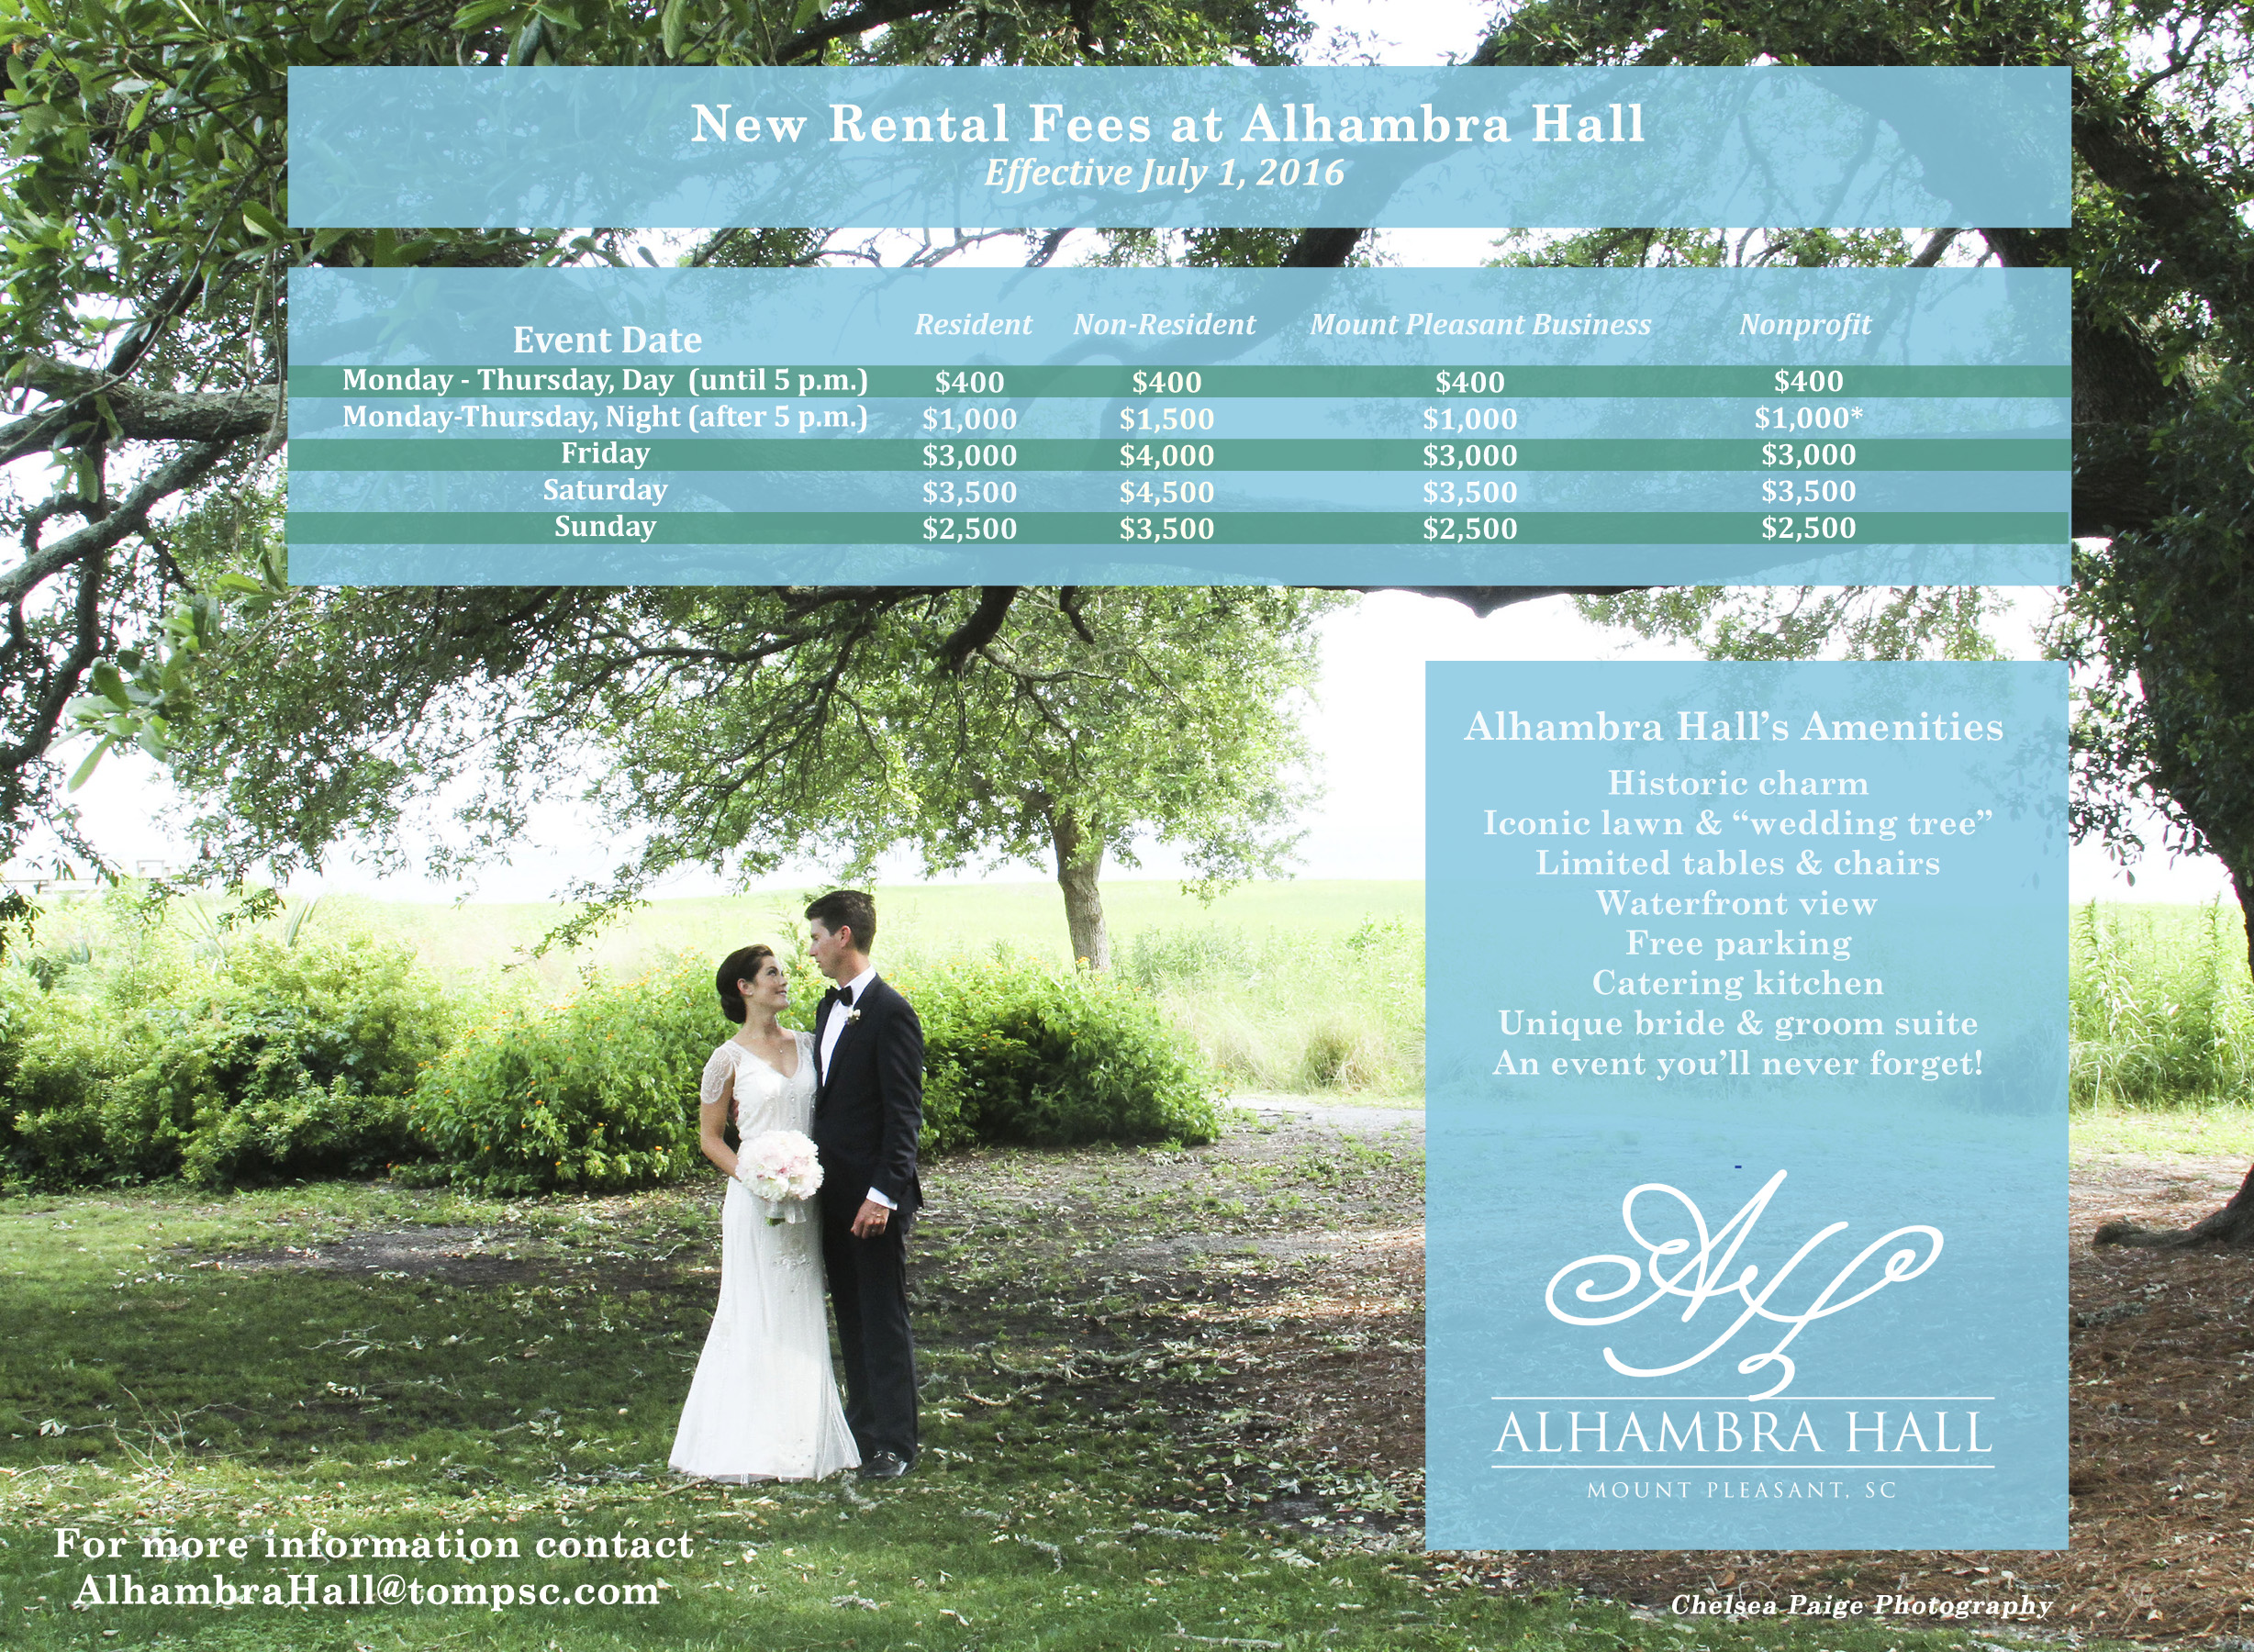 Alhambra Hall ficial Weddings & Event Bookings